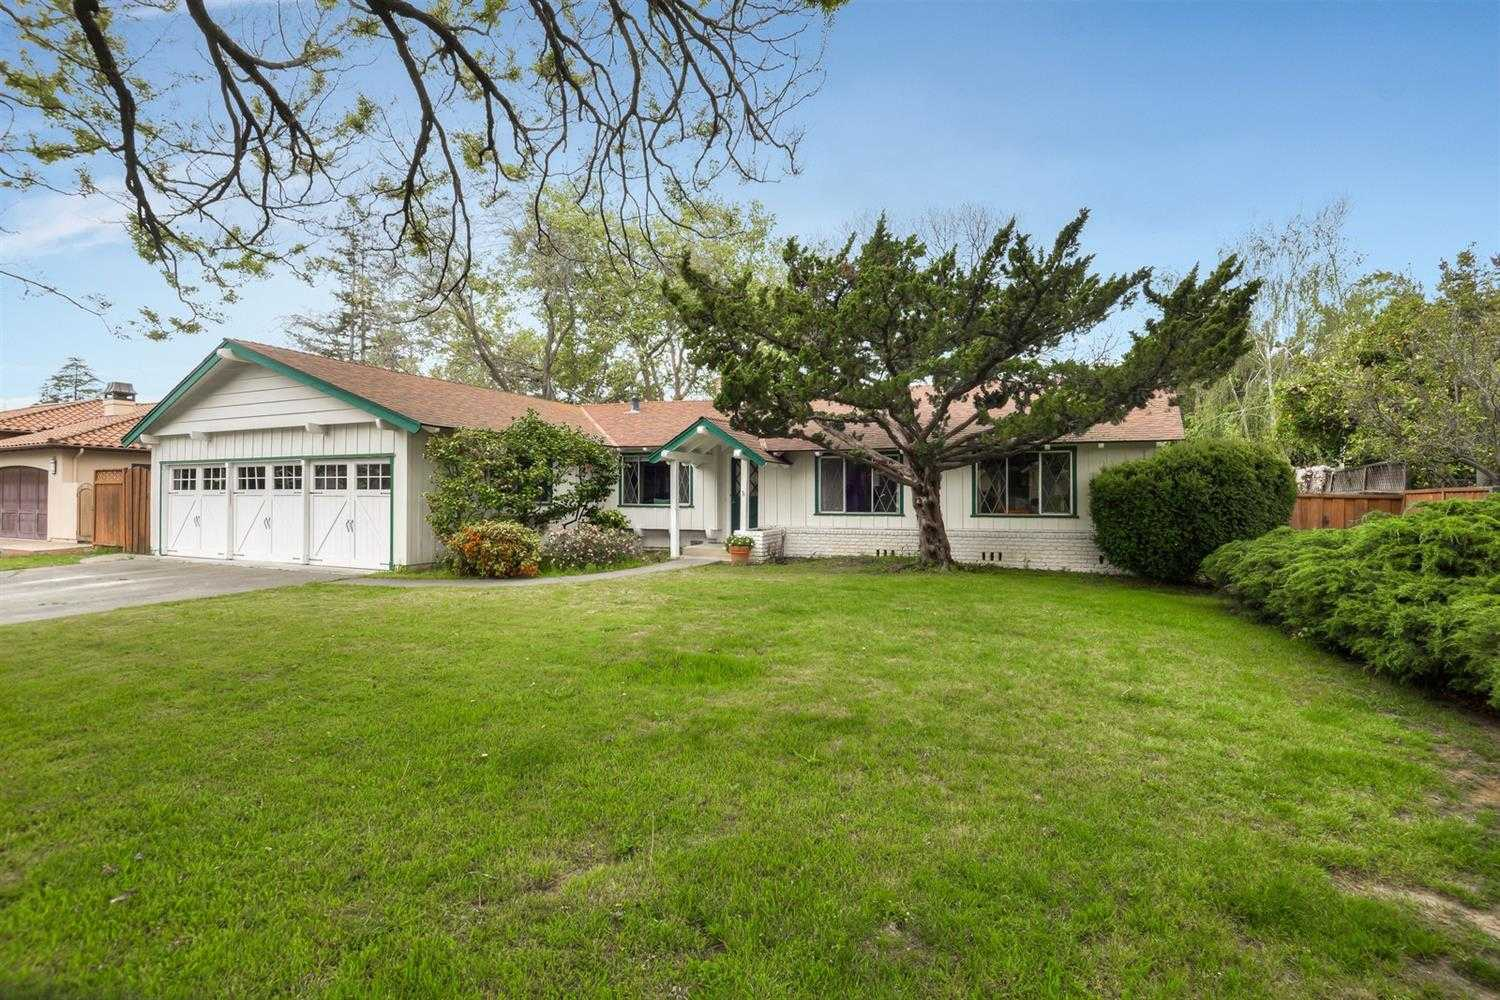 $2,798,000 - 3Br/2Ba -  for Sale in Los Altos